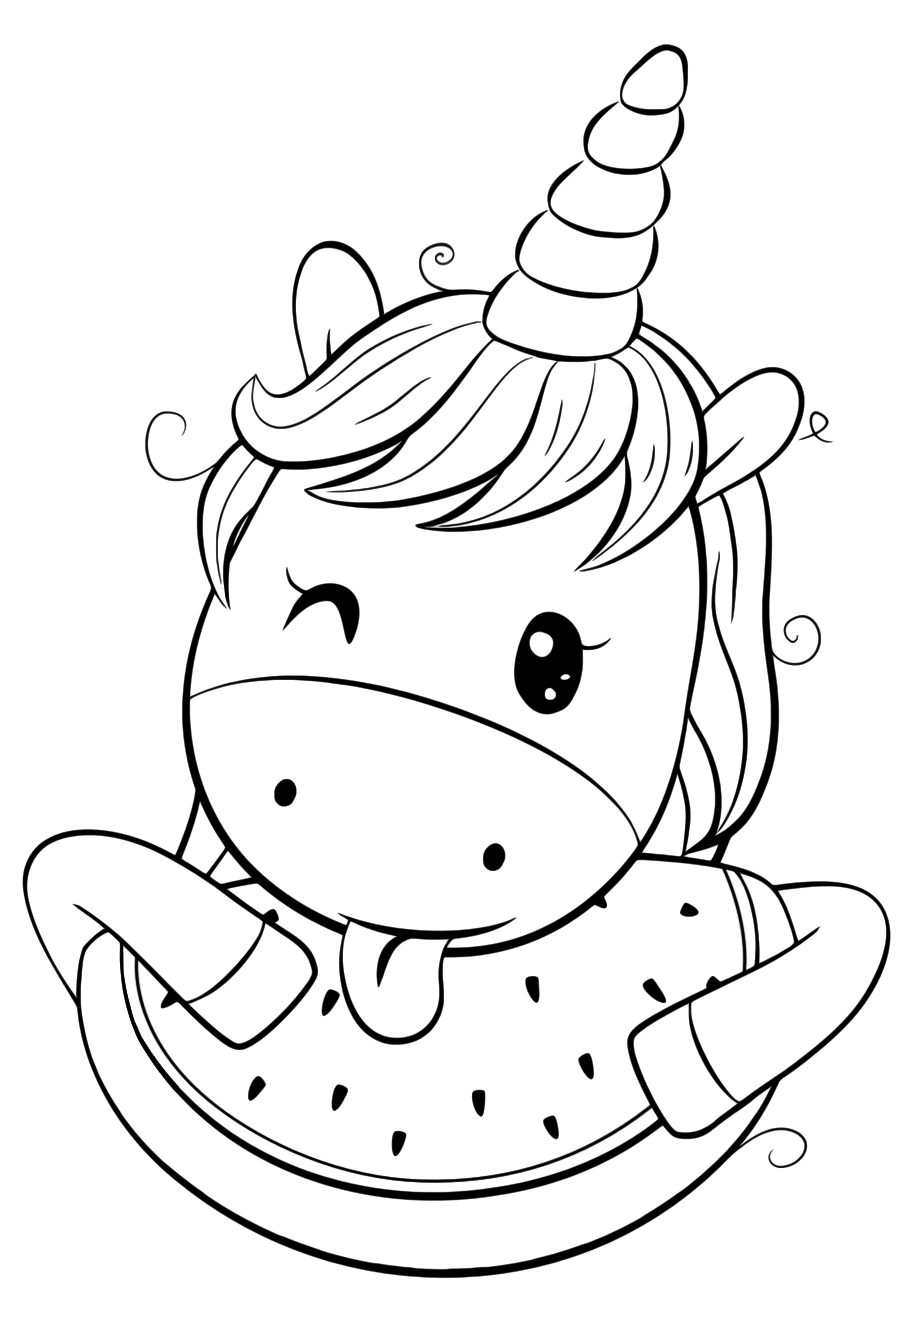 coloring worksheets unicorn unicorn coloring page for kids stock illustration worksheets unicorn coloring